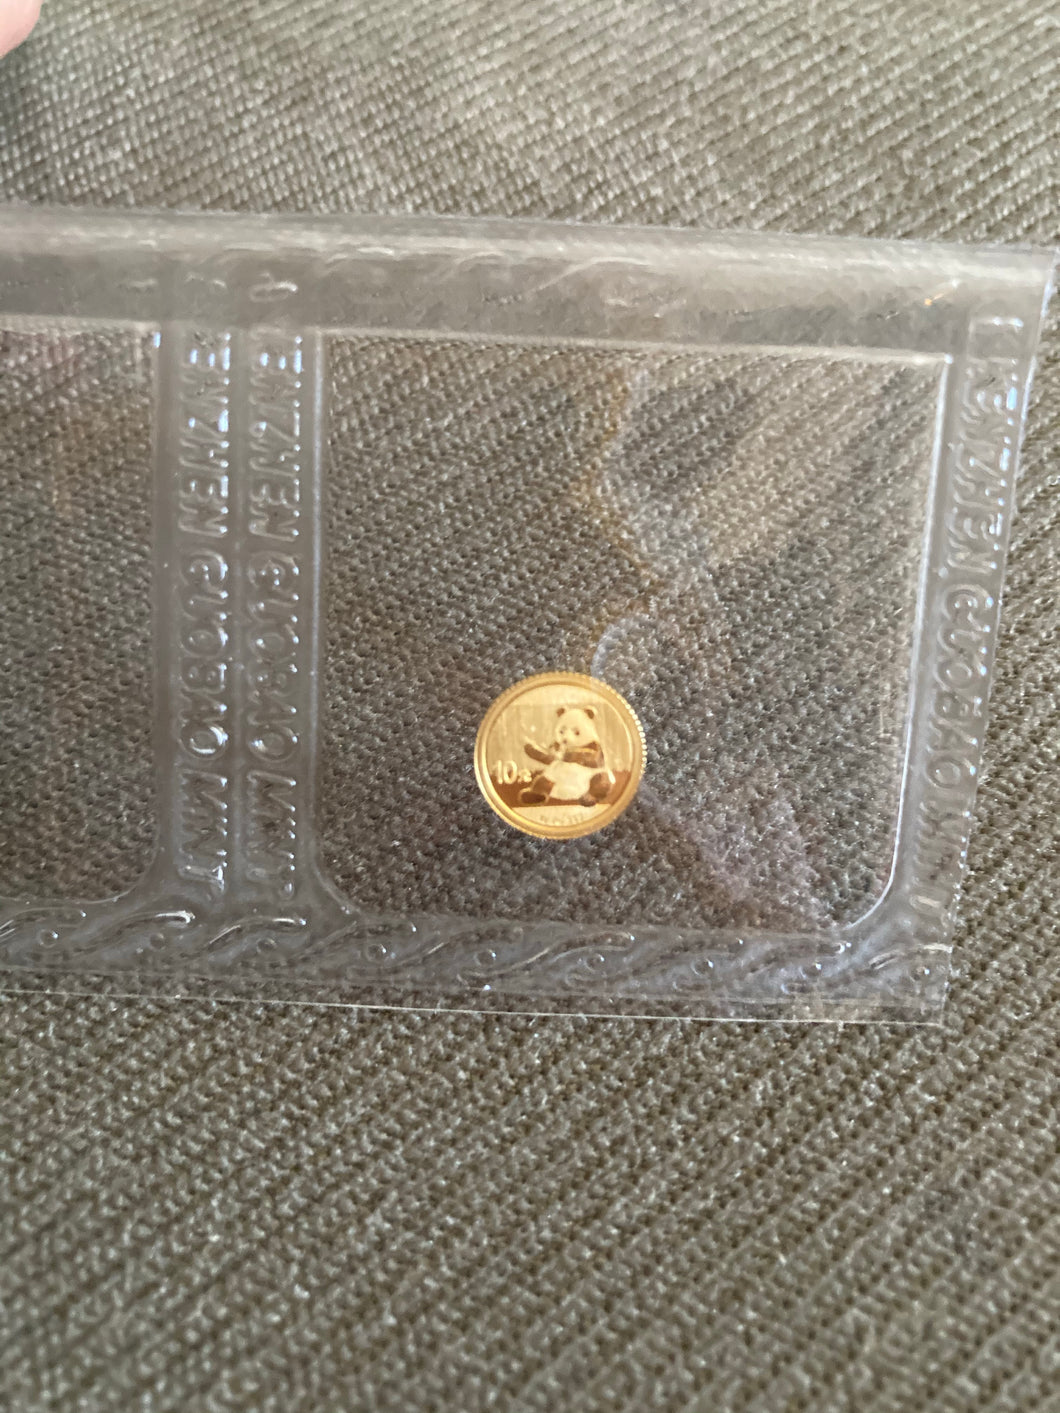 China 2017 Gold Panda 1 gram 10 Yuan. Original sealed.